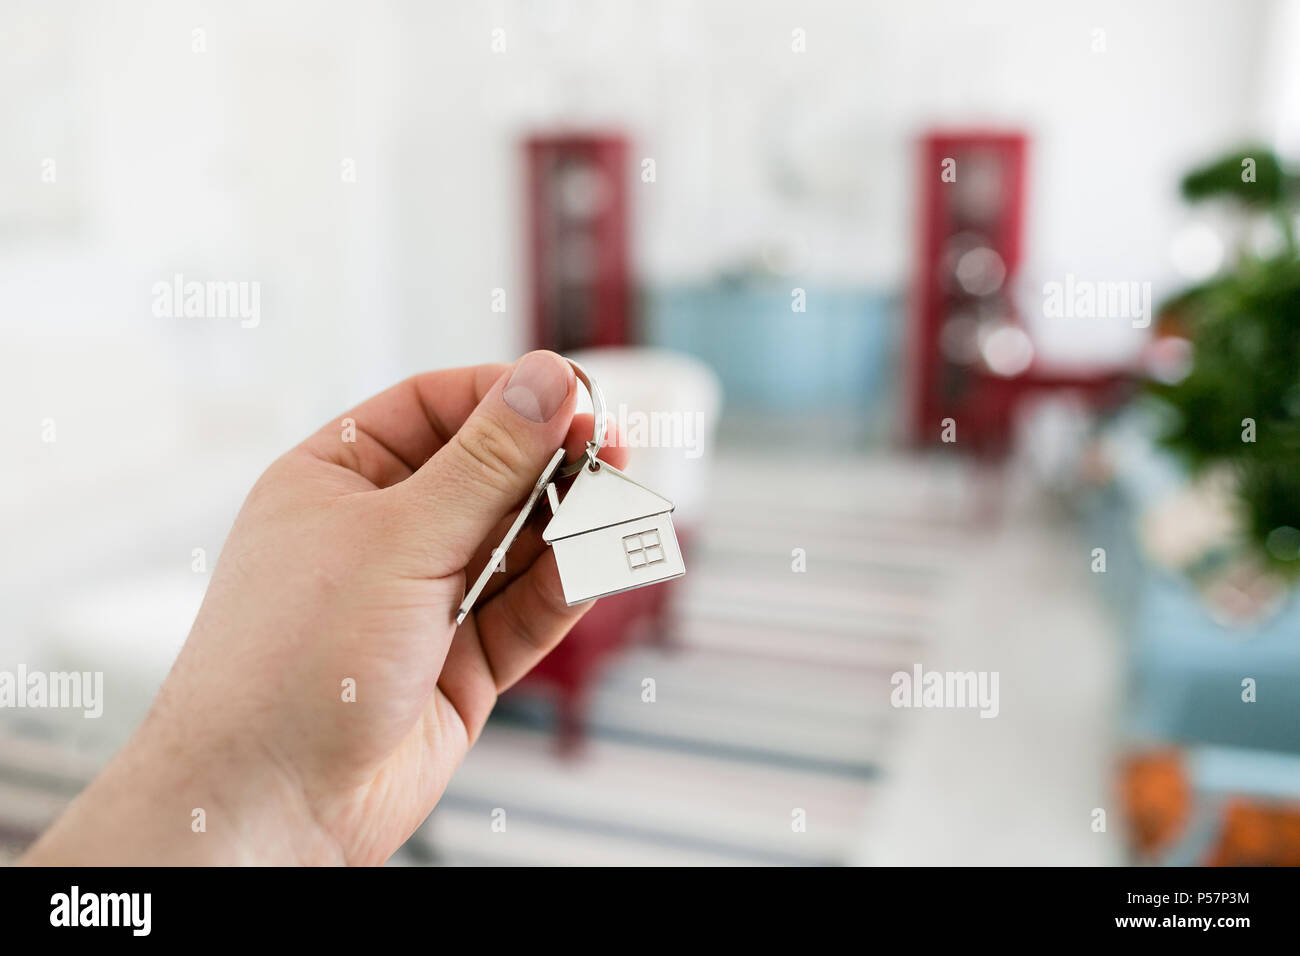 Mortgage concept. Men hand holding key with house keychain. Modern light lobby interior. Real estate, moving home or renting property. - Stock Image